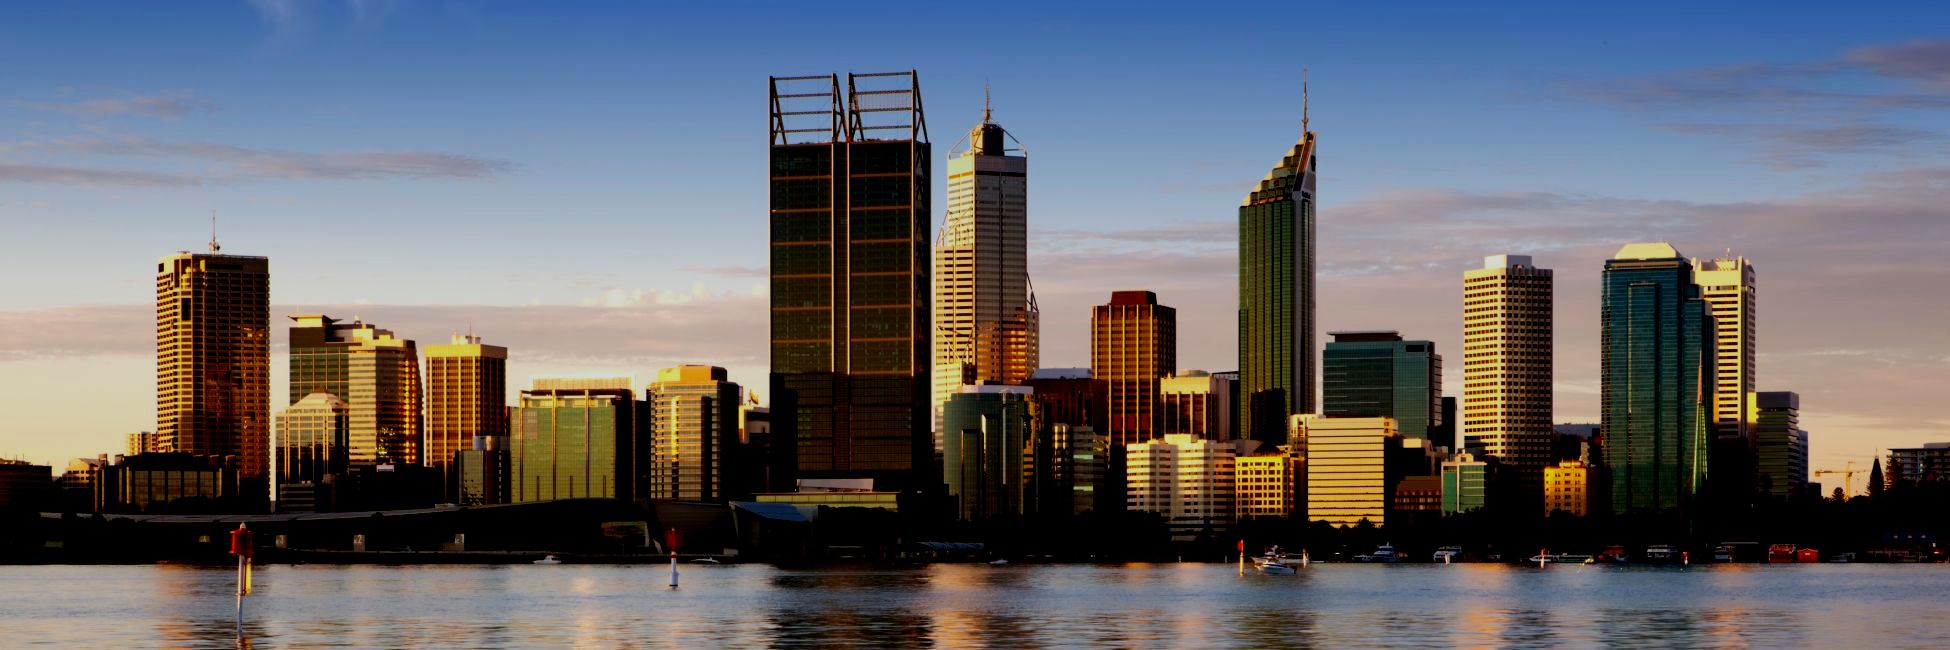 Bus tours perth